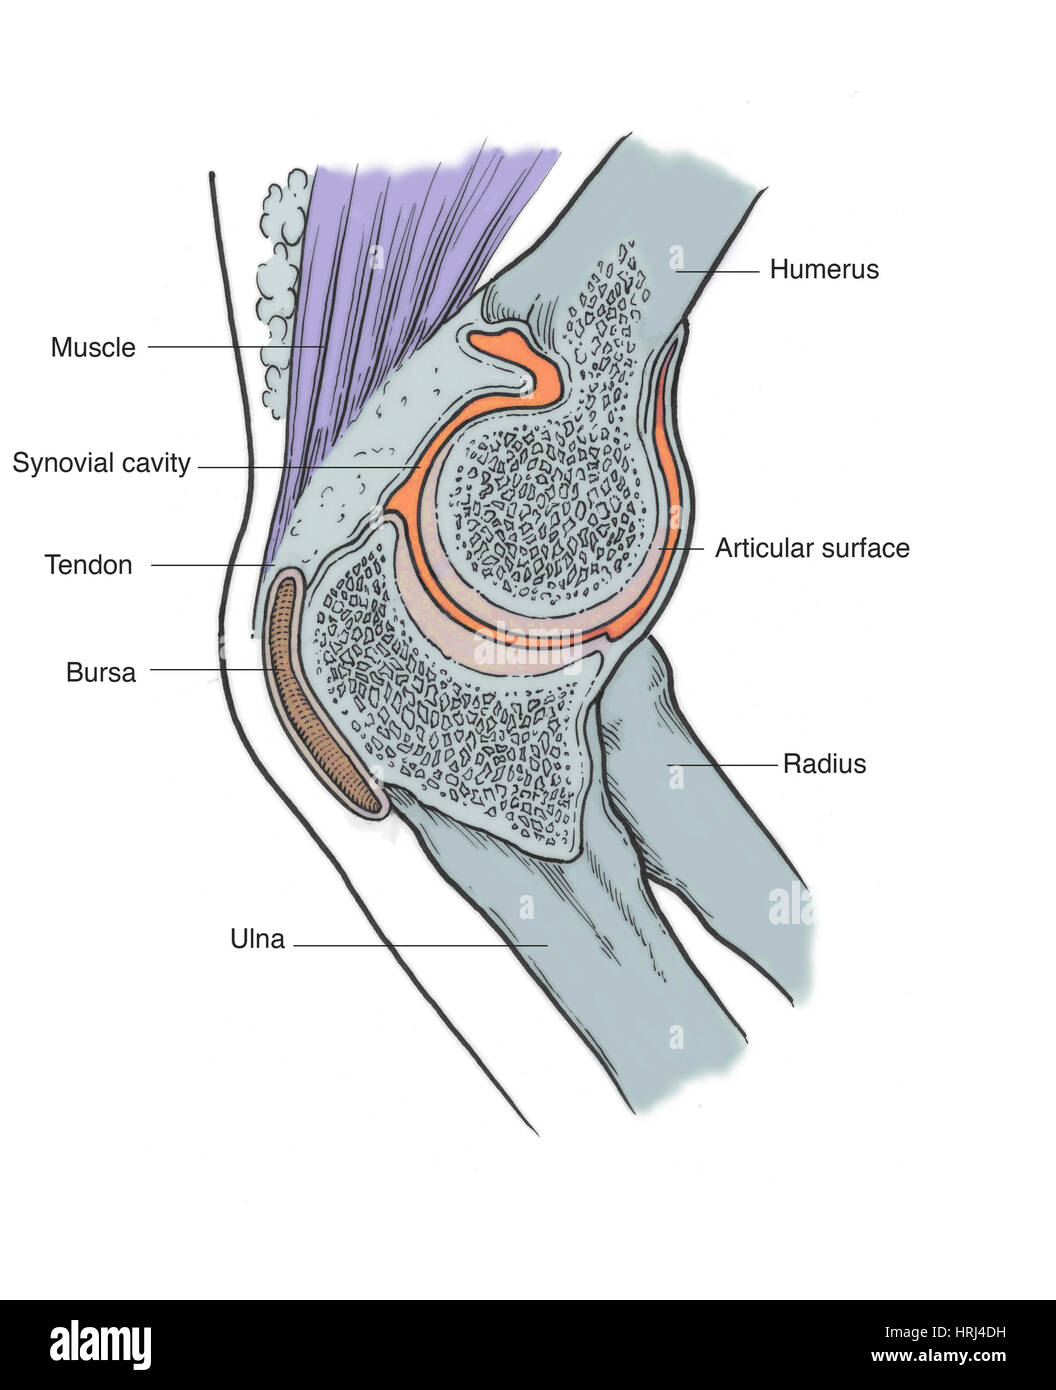 Illustration of Right Elbow Joint Stock Photo: 135008317 - Alamy